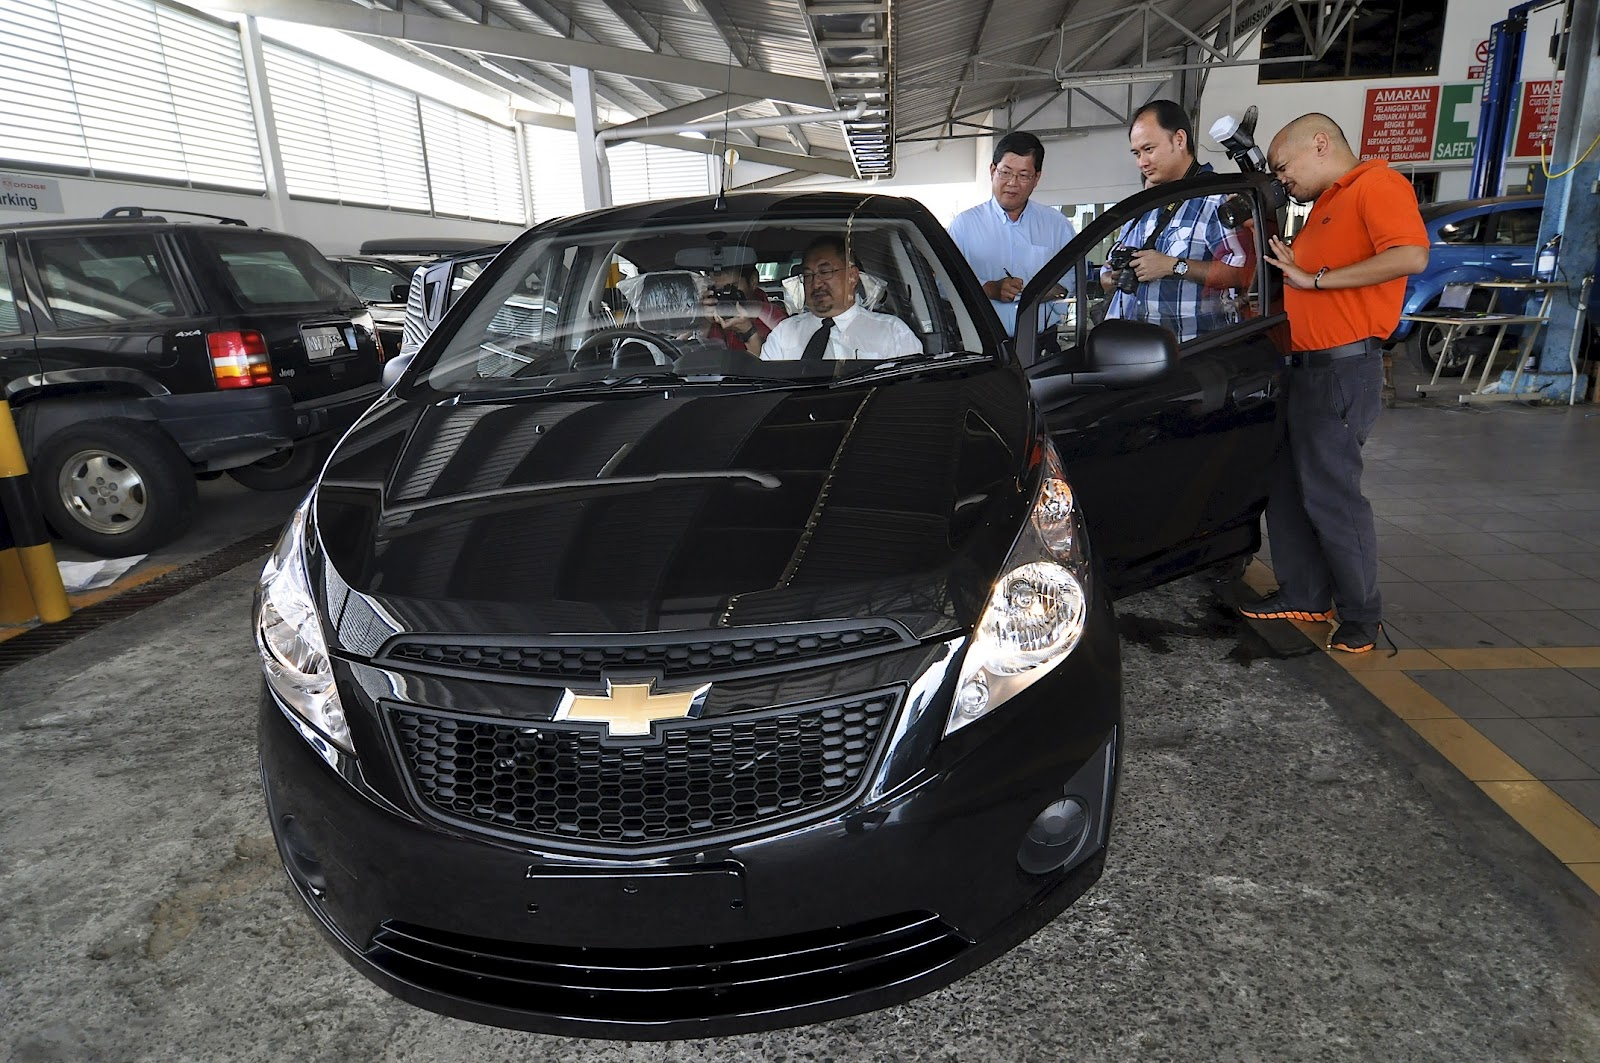 Chevrolet spark finally touch down at brunei